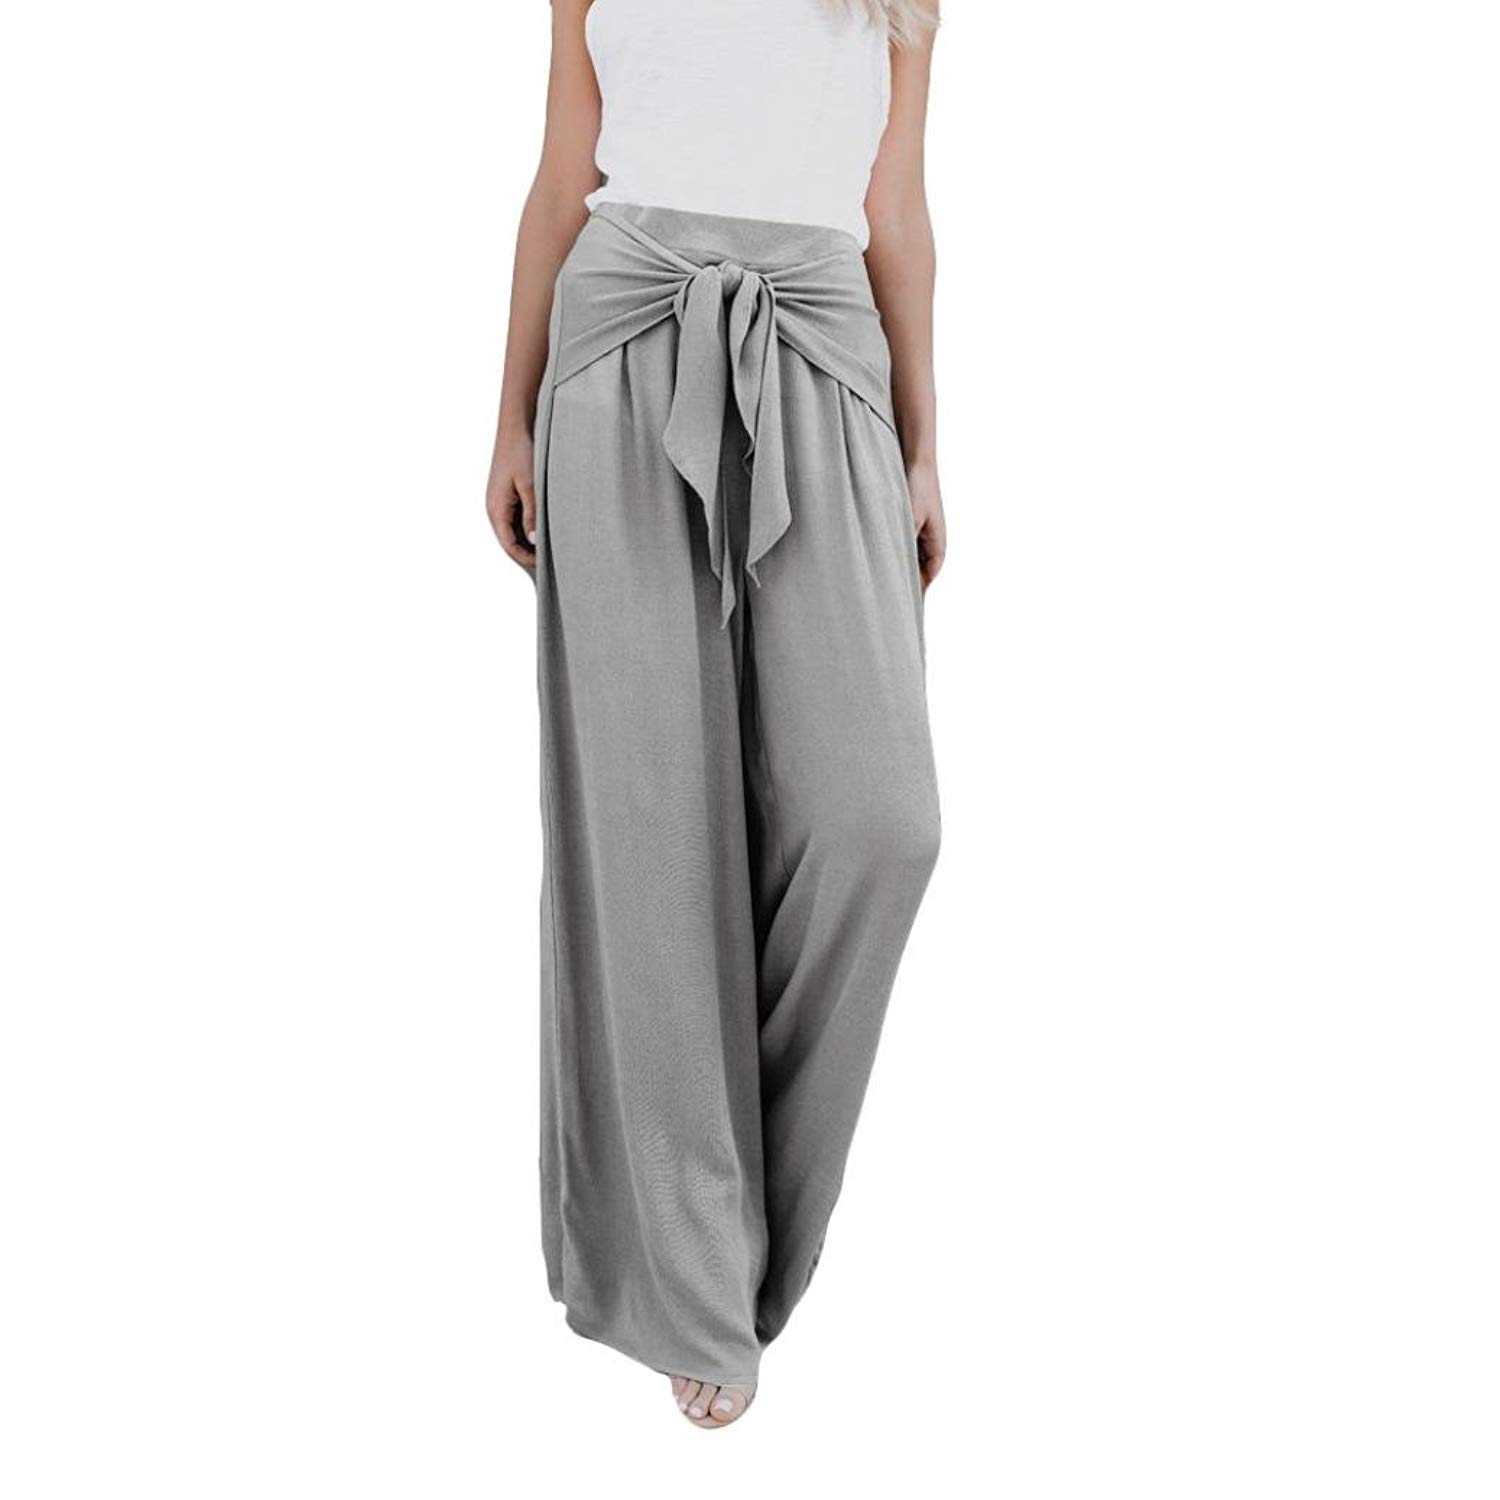 1cb2adcba Get Quotations · Women's Casual Loose High Waist Wide Leg Bell Bottom  Palazzo Flare Pants Leggings